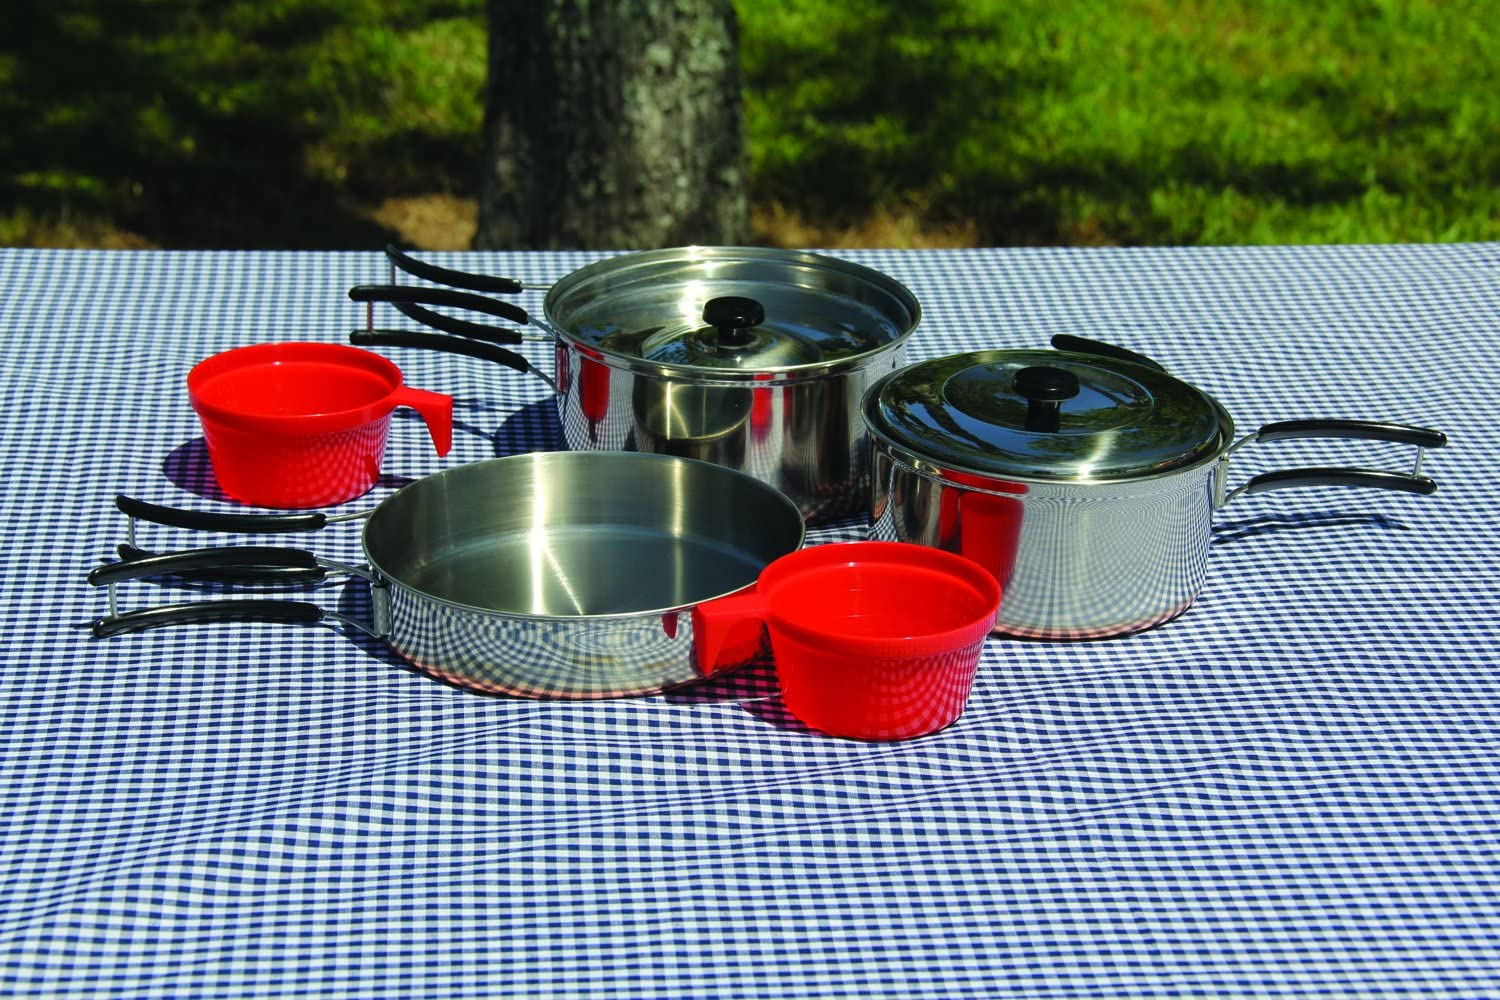 Texsport Stainless Steel Copper Bottom Outdoor Camping Cookware Cook Set with 2 Cups and Storage Bag 13432